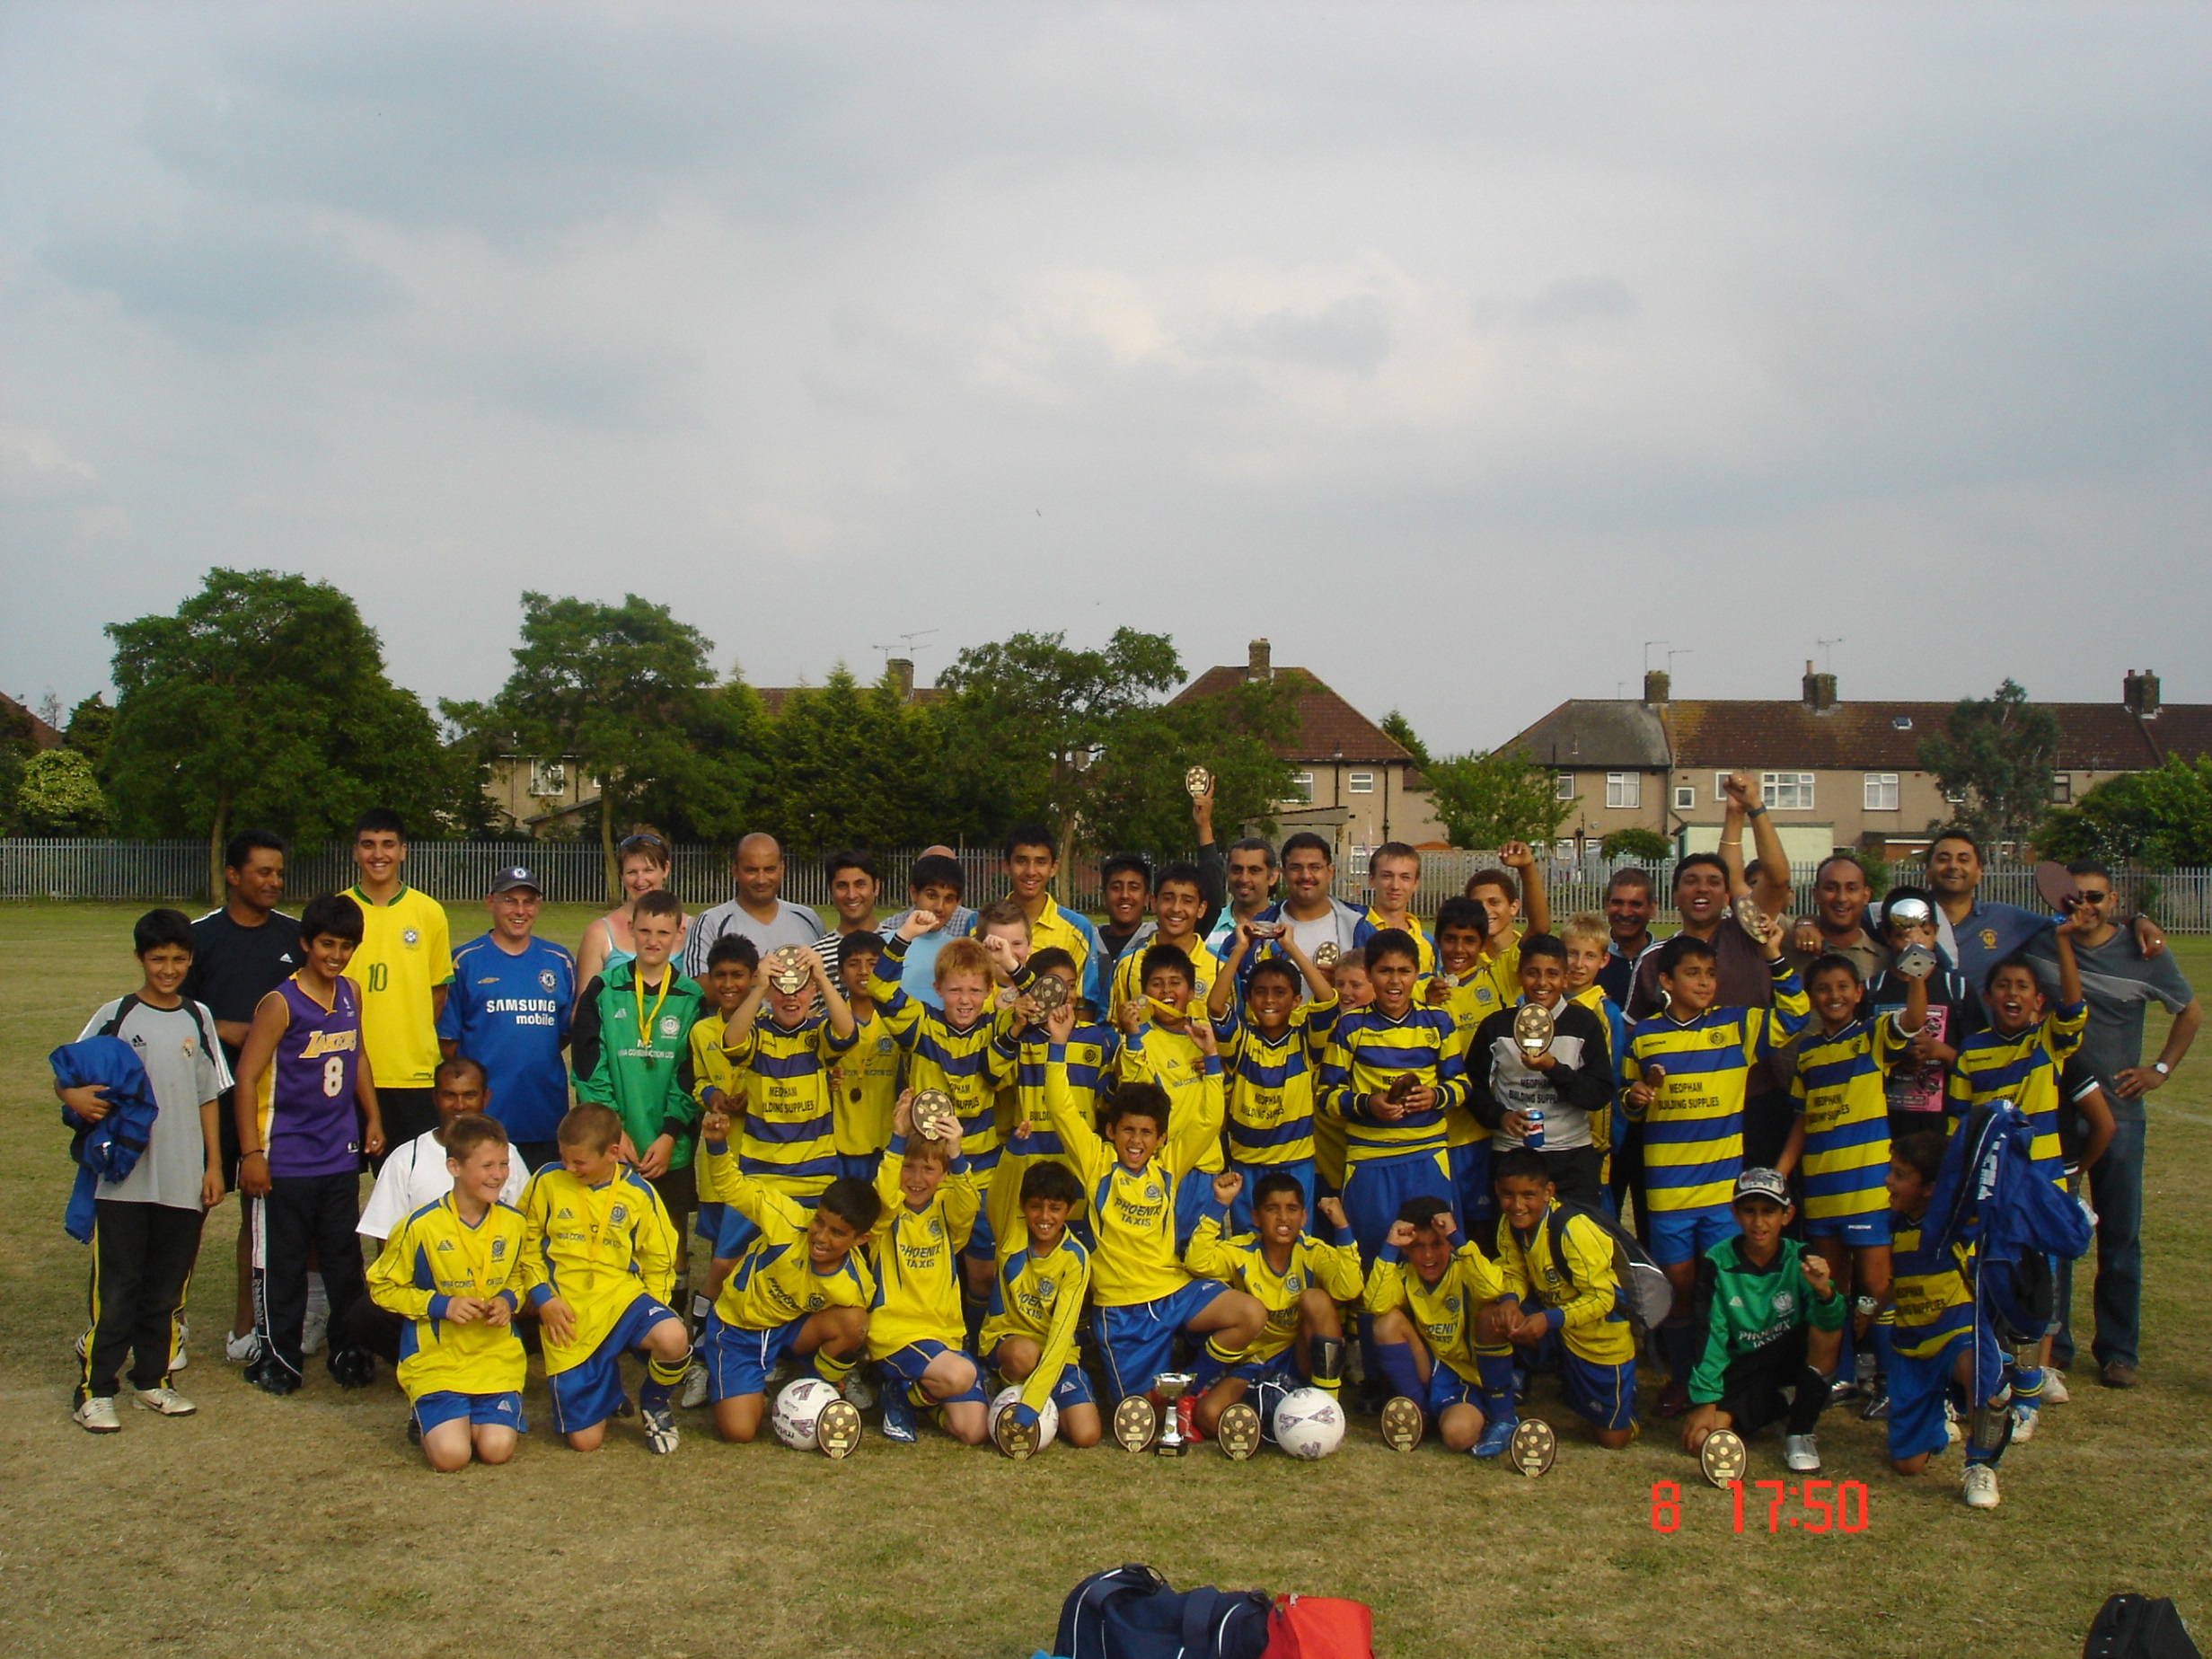 Youth teams at Barking 2007 with medals